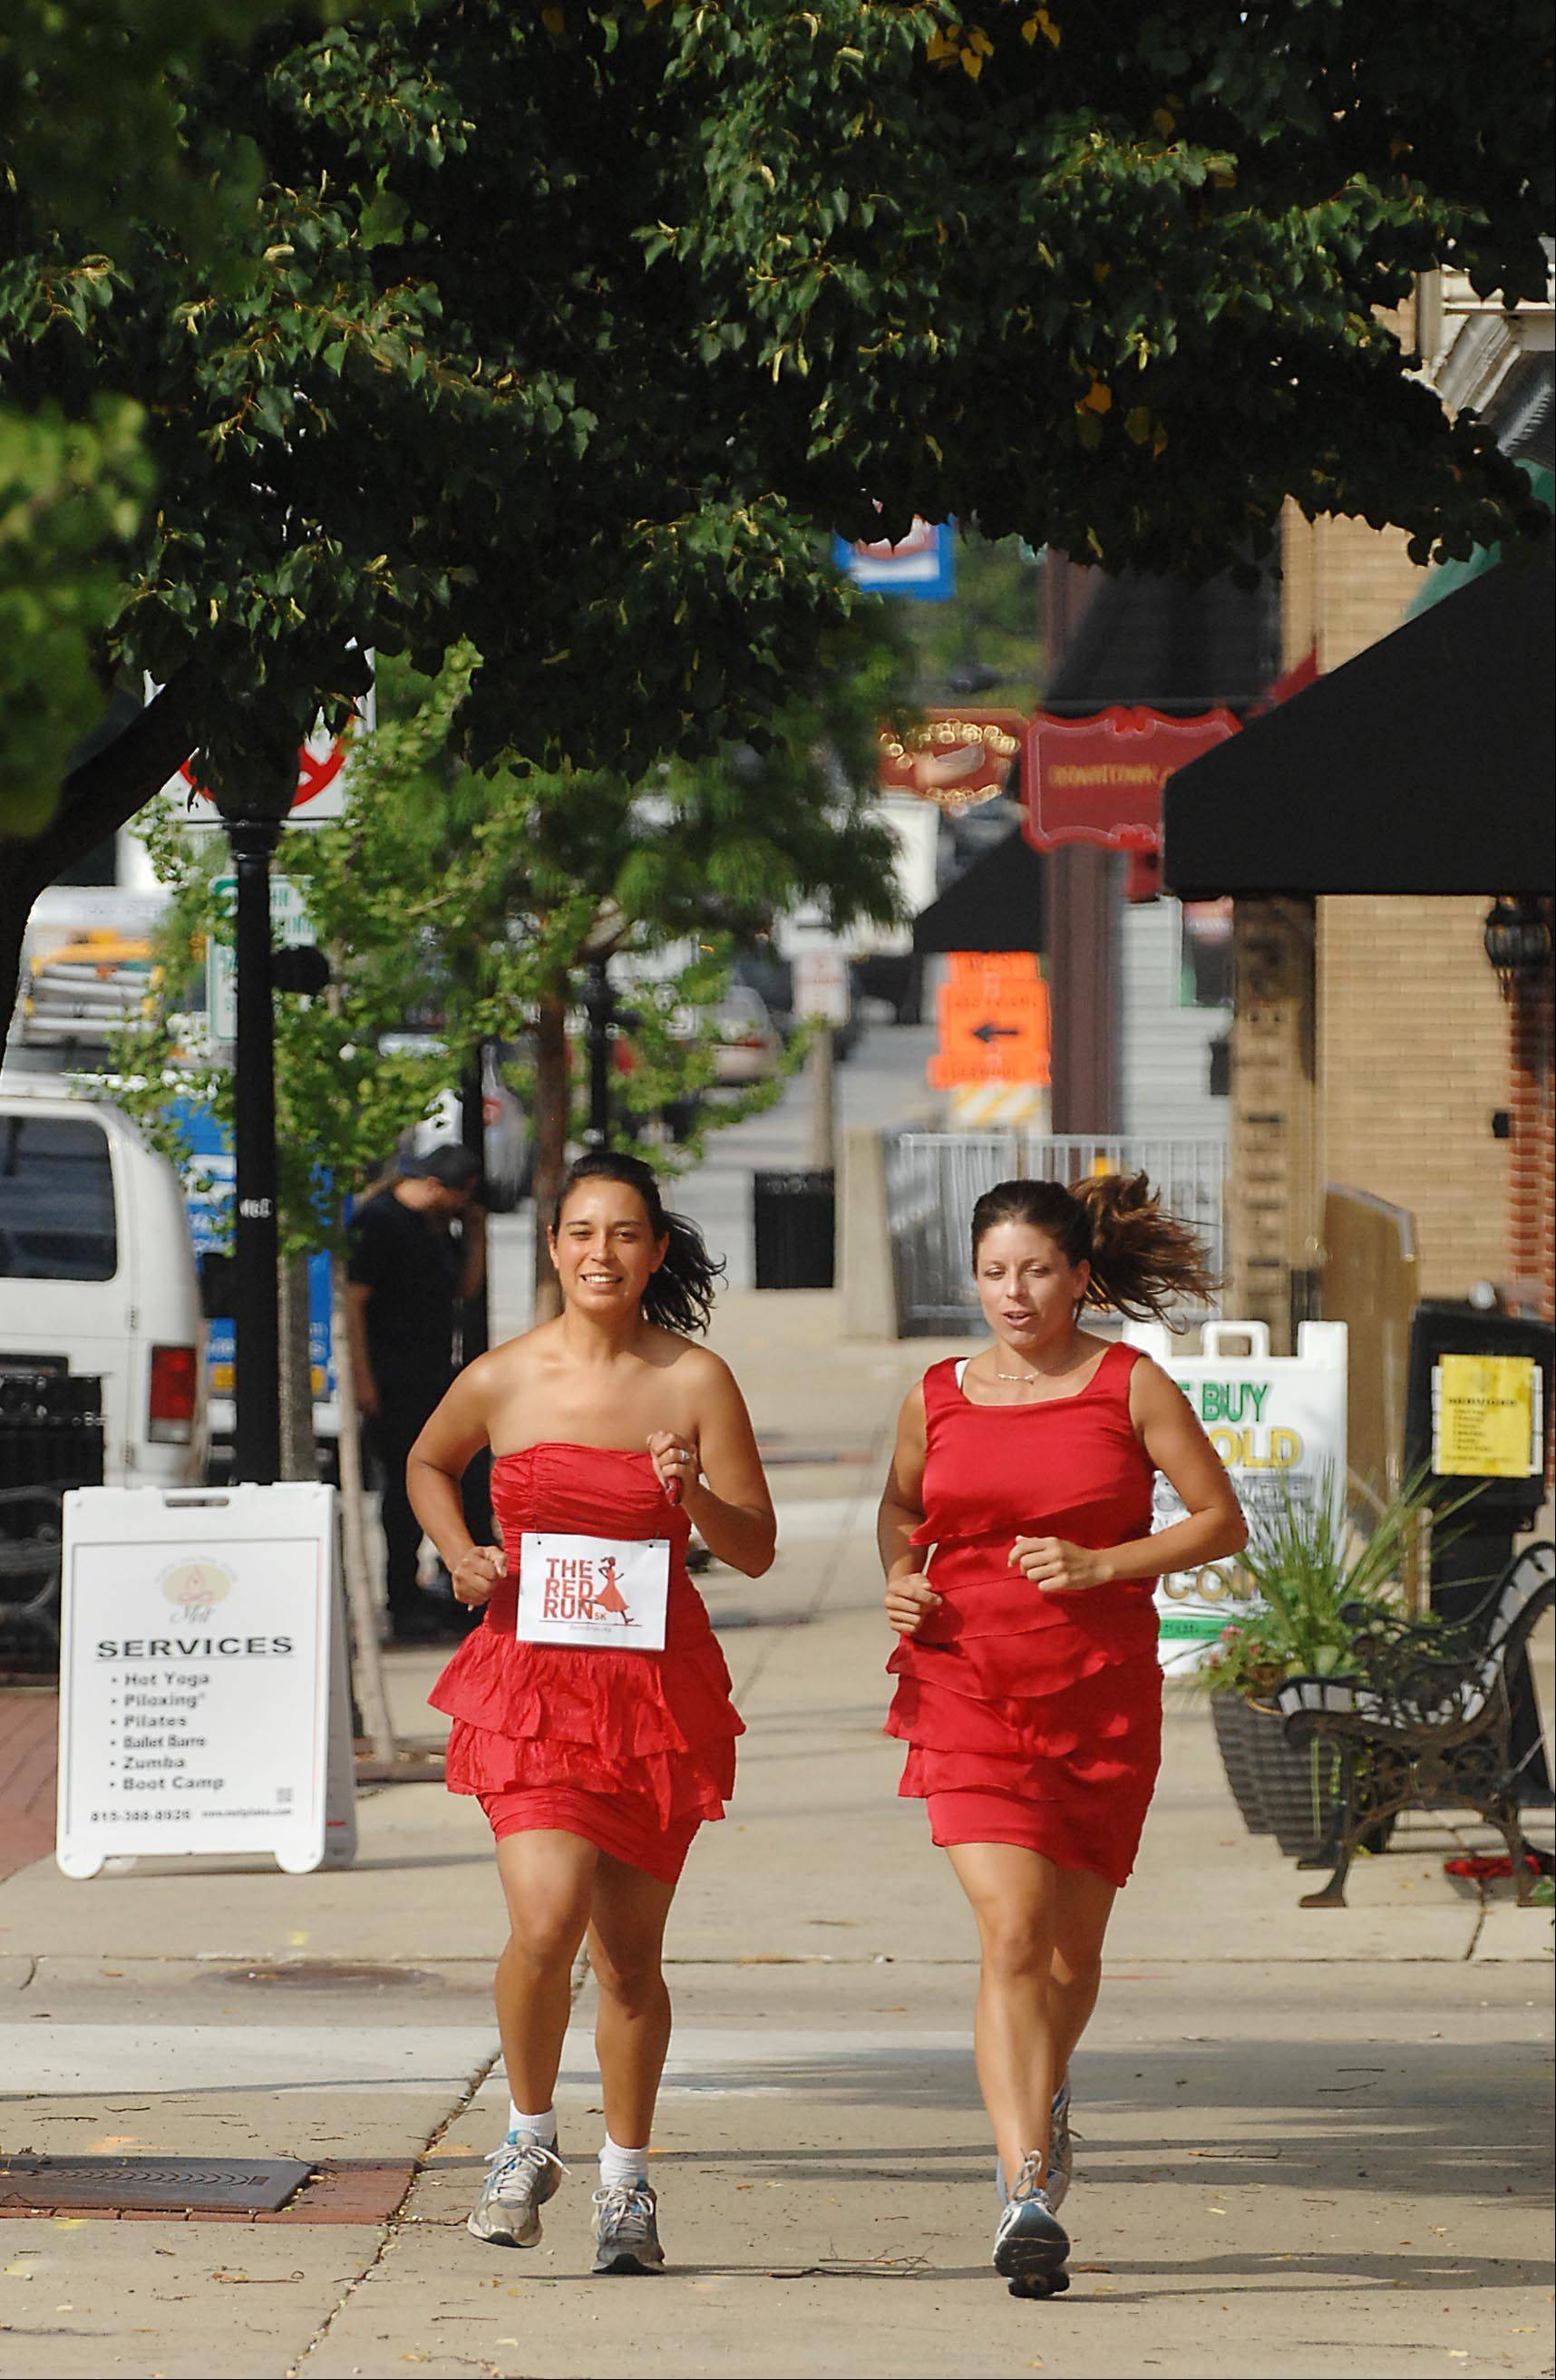 Cortina Nystad, left, and Kristen Guerrieri wear red dresses during their regular run at rush hour in Algonquin, as a symbol of their fight against child sex trafficking. They have organized the Red Run 5K Run/Walk on Aug. 11 to benefit organizations who help combat the problem.